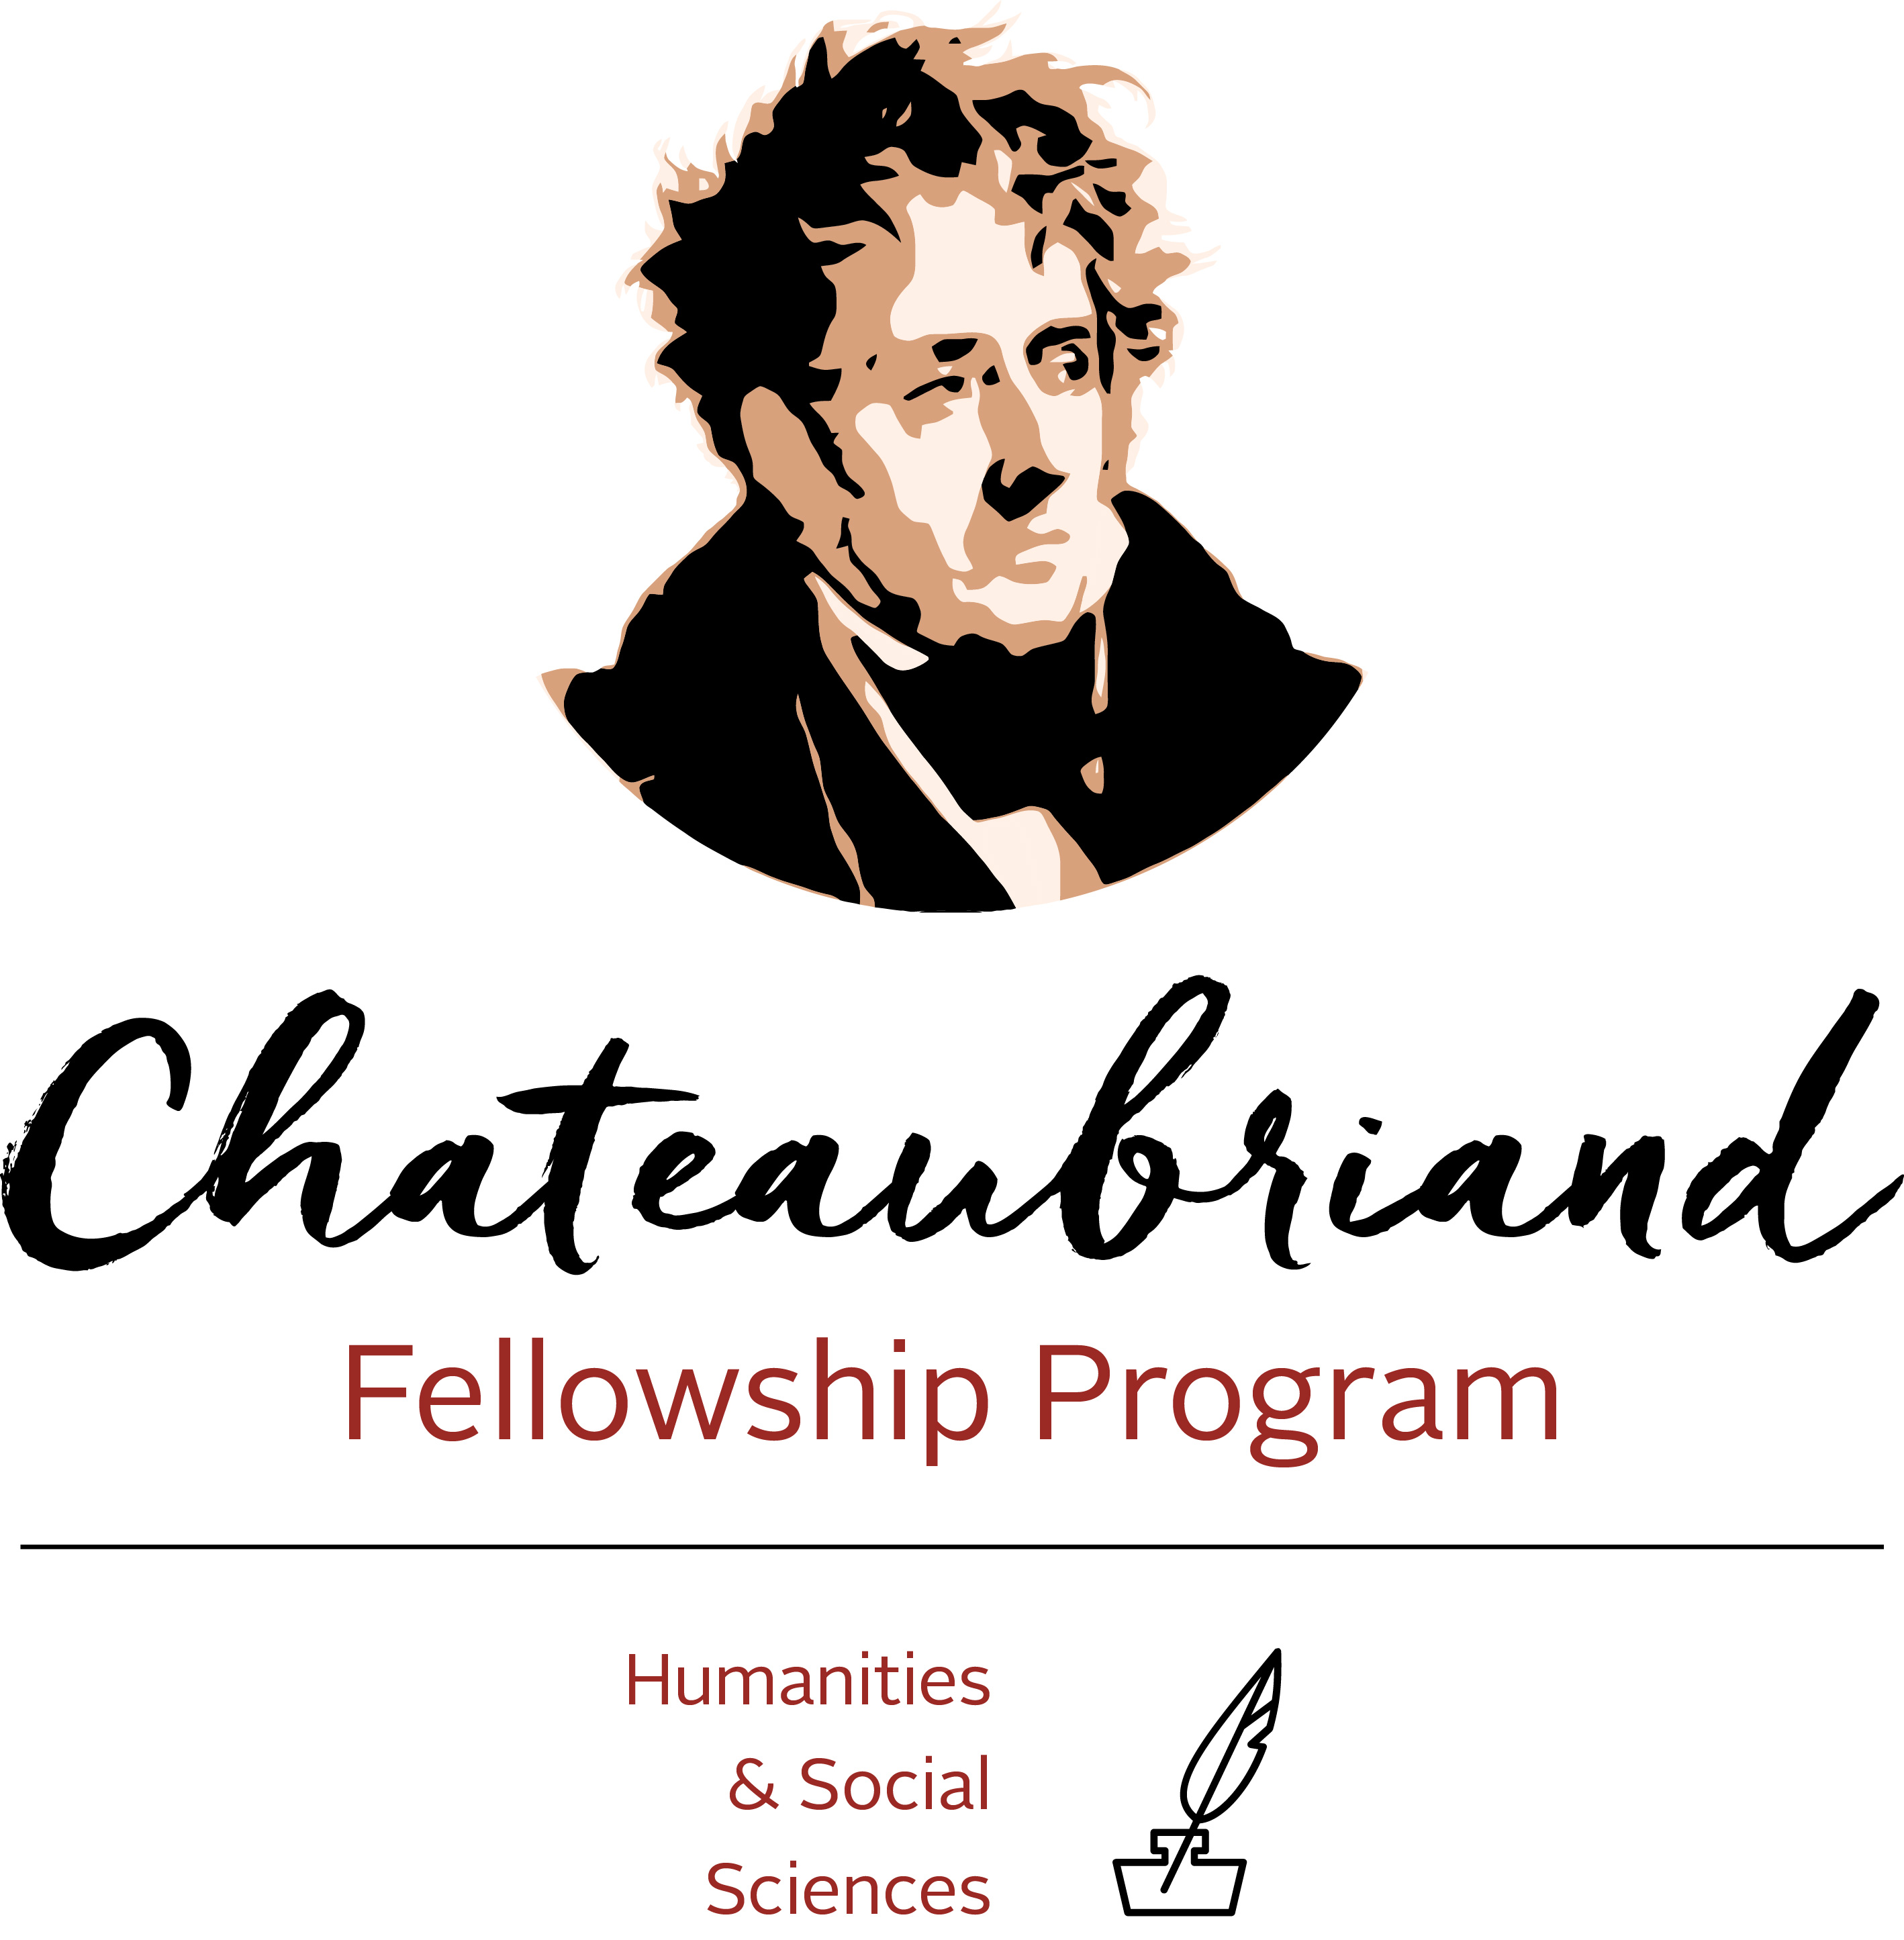 Resources for Fellows - Chateaubriand Fellowship Program